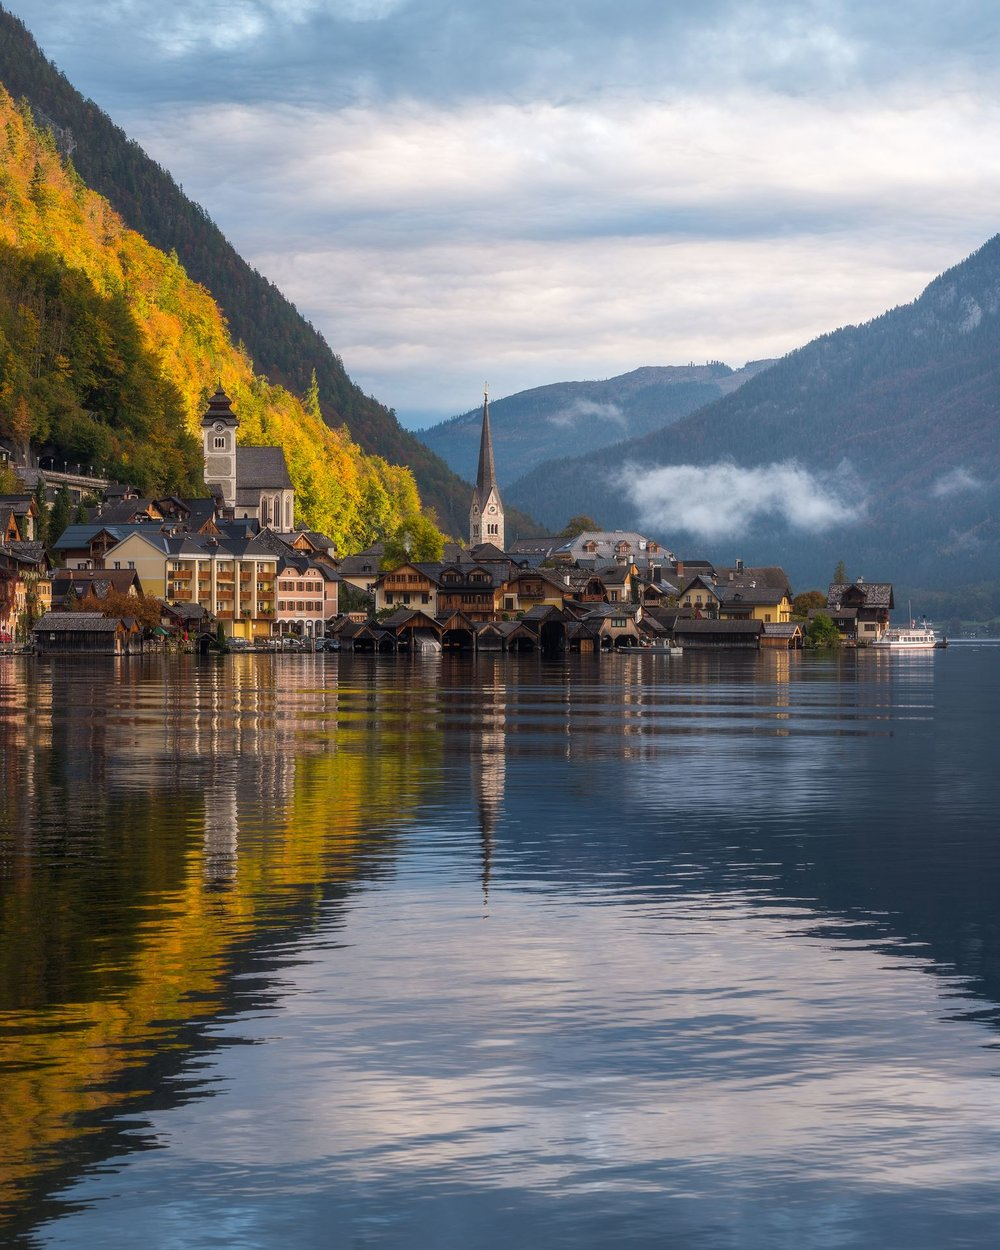 This is my personal favorite of the year, and it seems like it was yours as well, this is by far my most liked photo on Instagram. It was a beautiful autumn morning in Hallstatt, Austria.